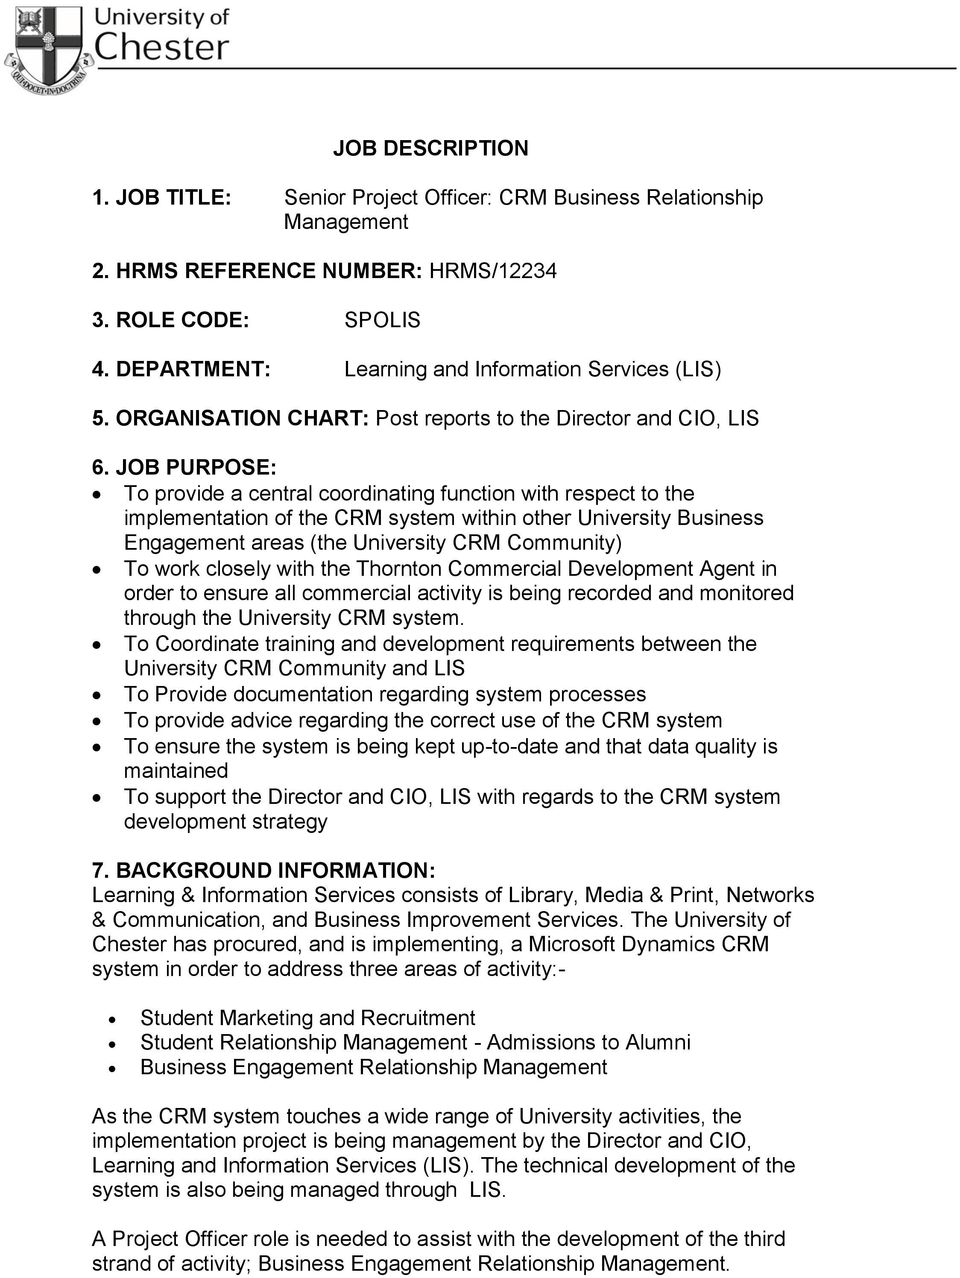 JOB PURPOSE: To provide a central coordinating function with respect to the implementation of the CRM system within other University Business Engagement areas (the University CRM Community) To work